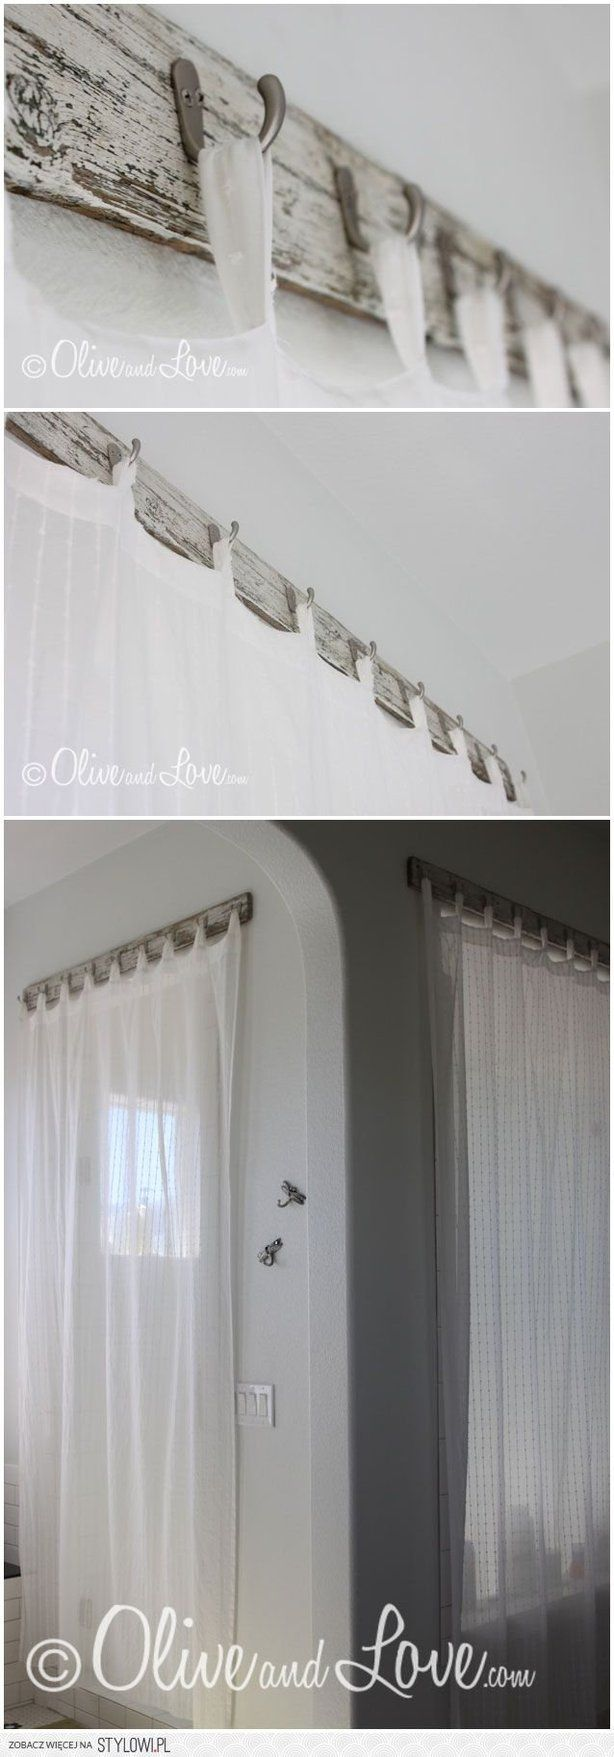 I like these ideas for curtain hangers in the mancave and then we can just tie them back on the sides if we want to let light in.